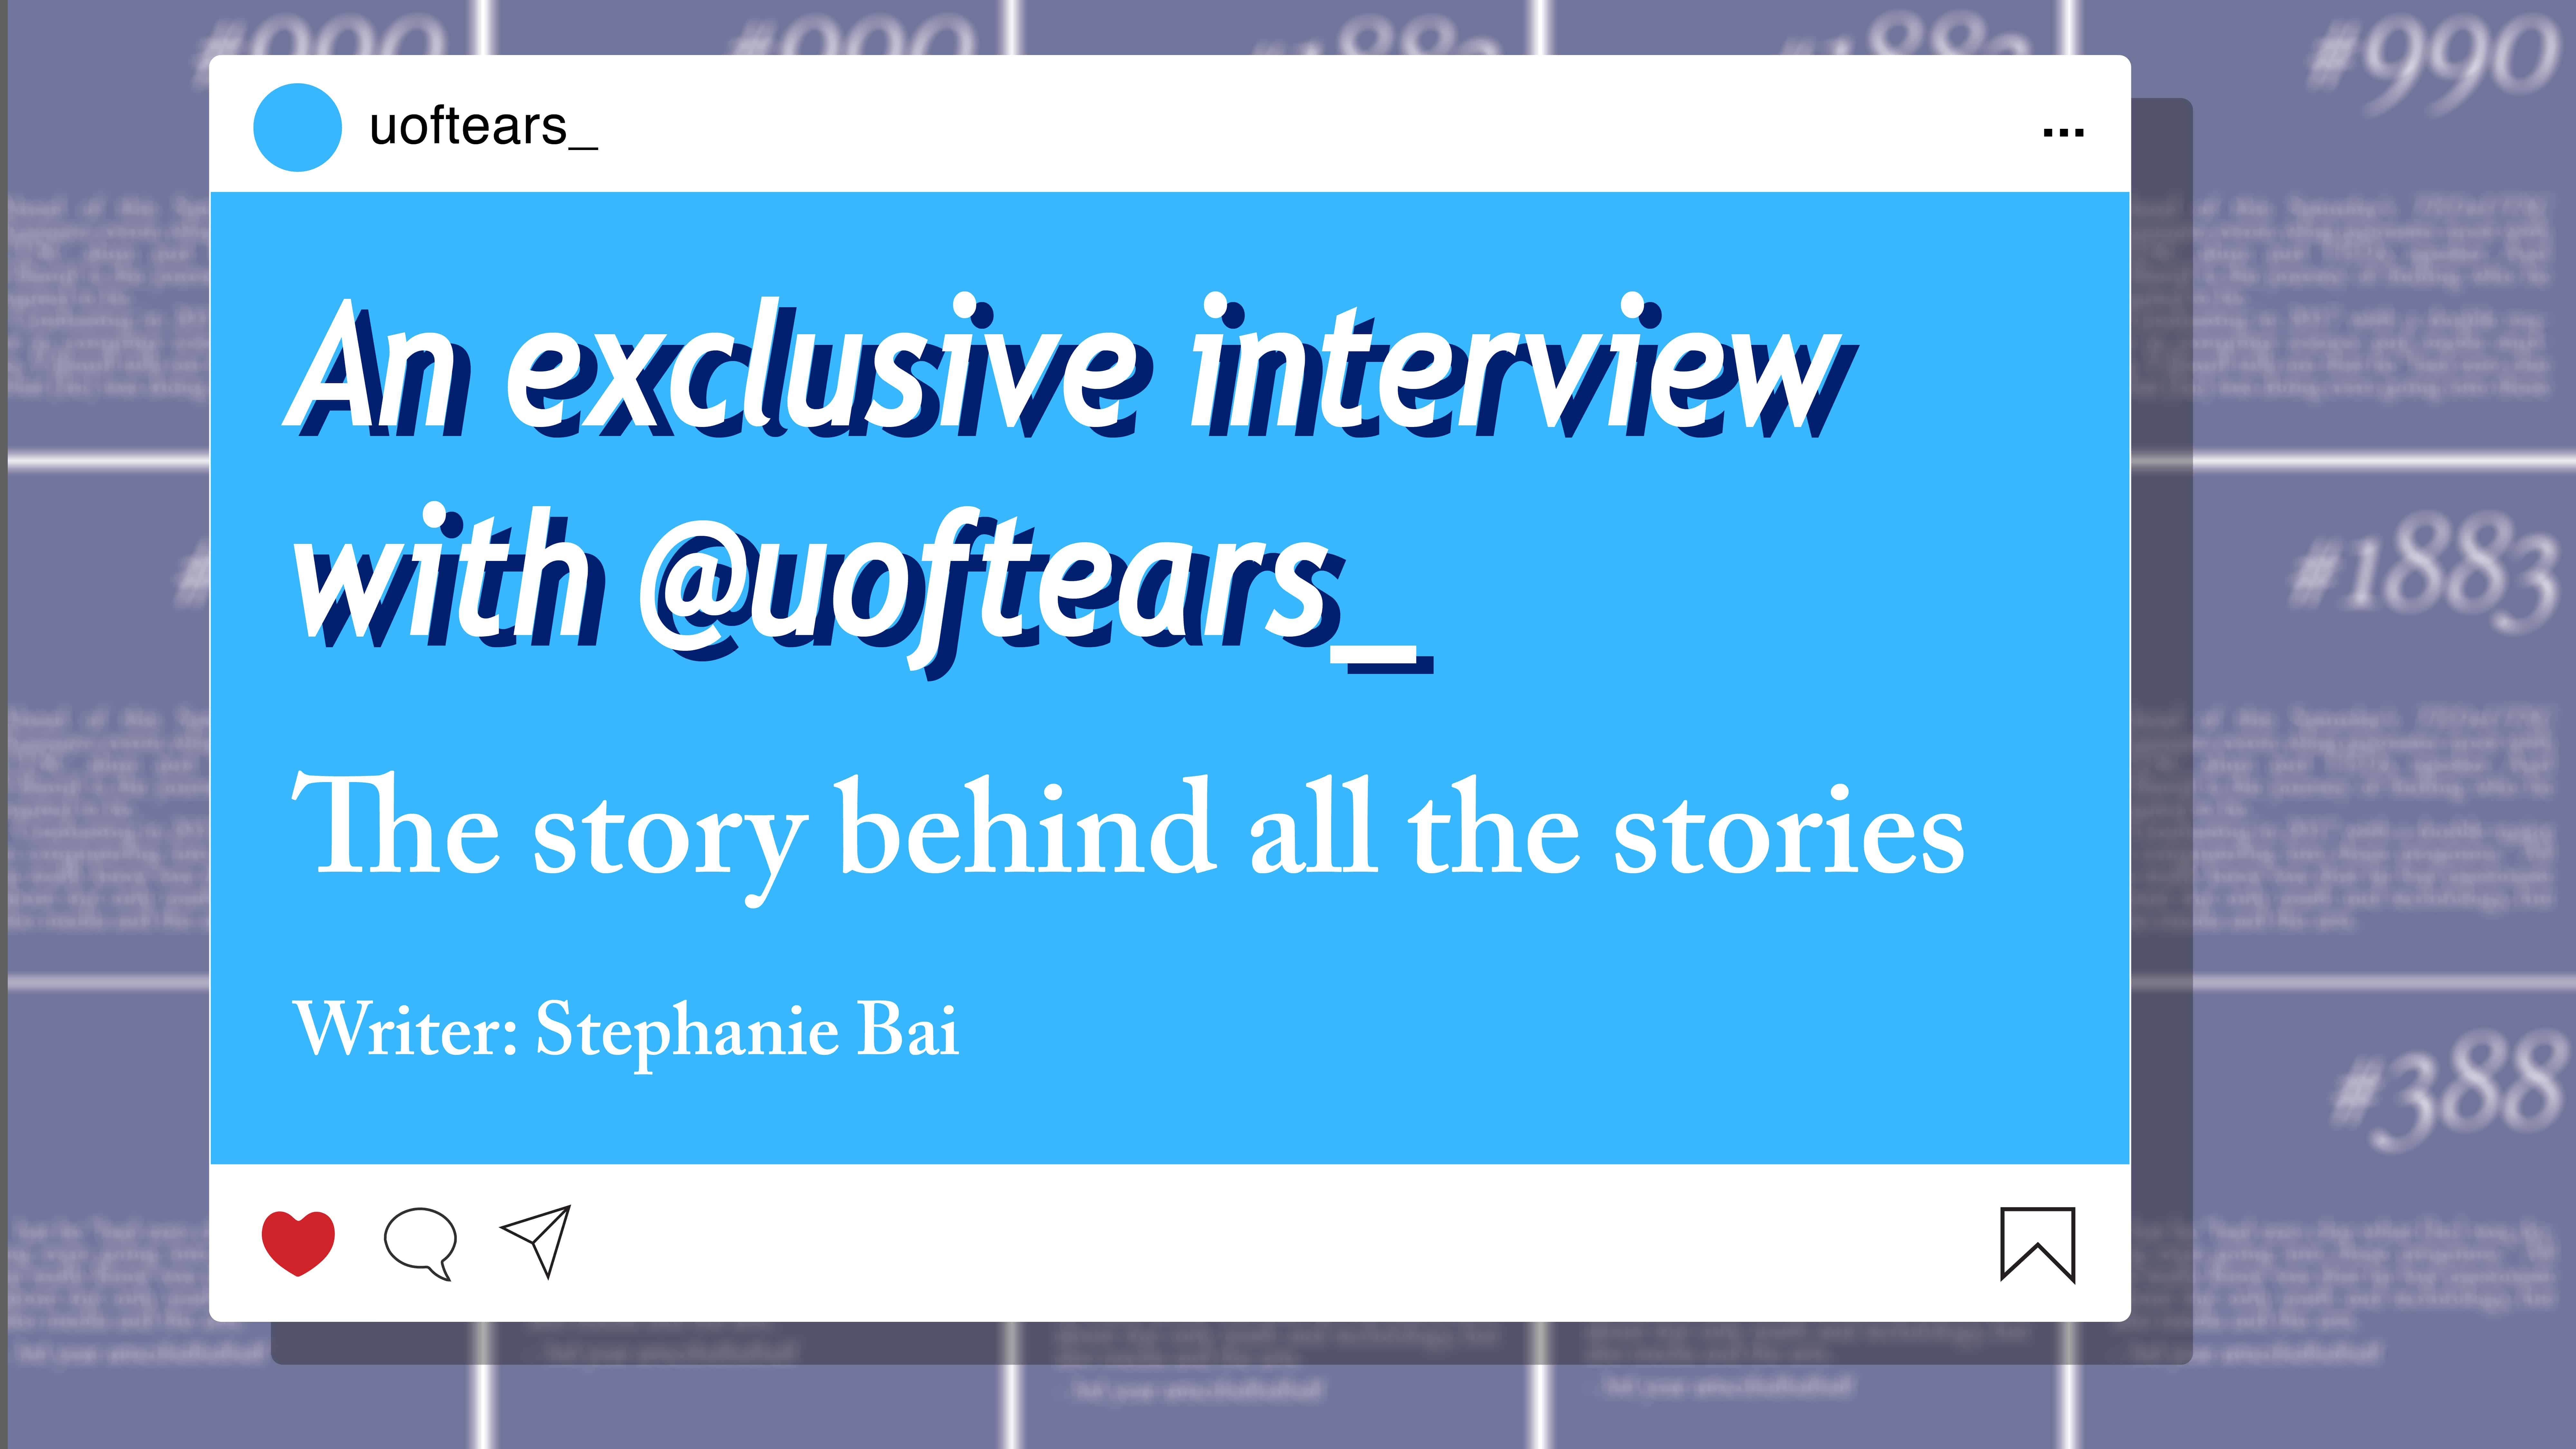 An exclusive interview with @uoftears_